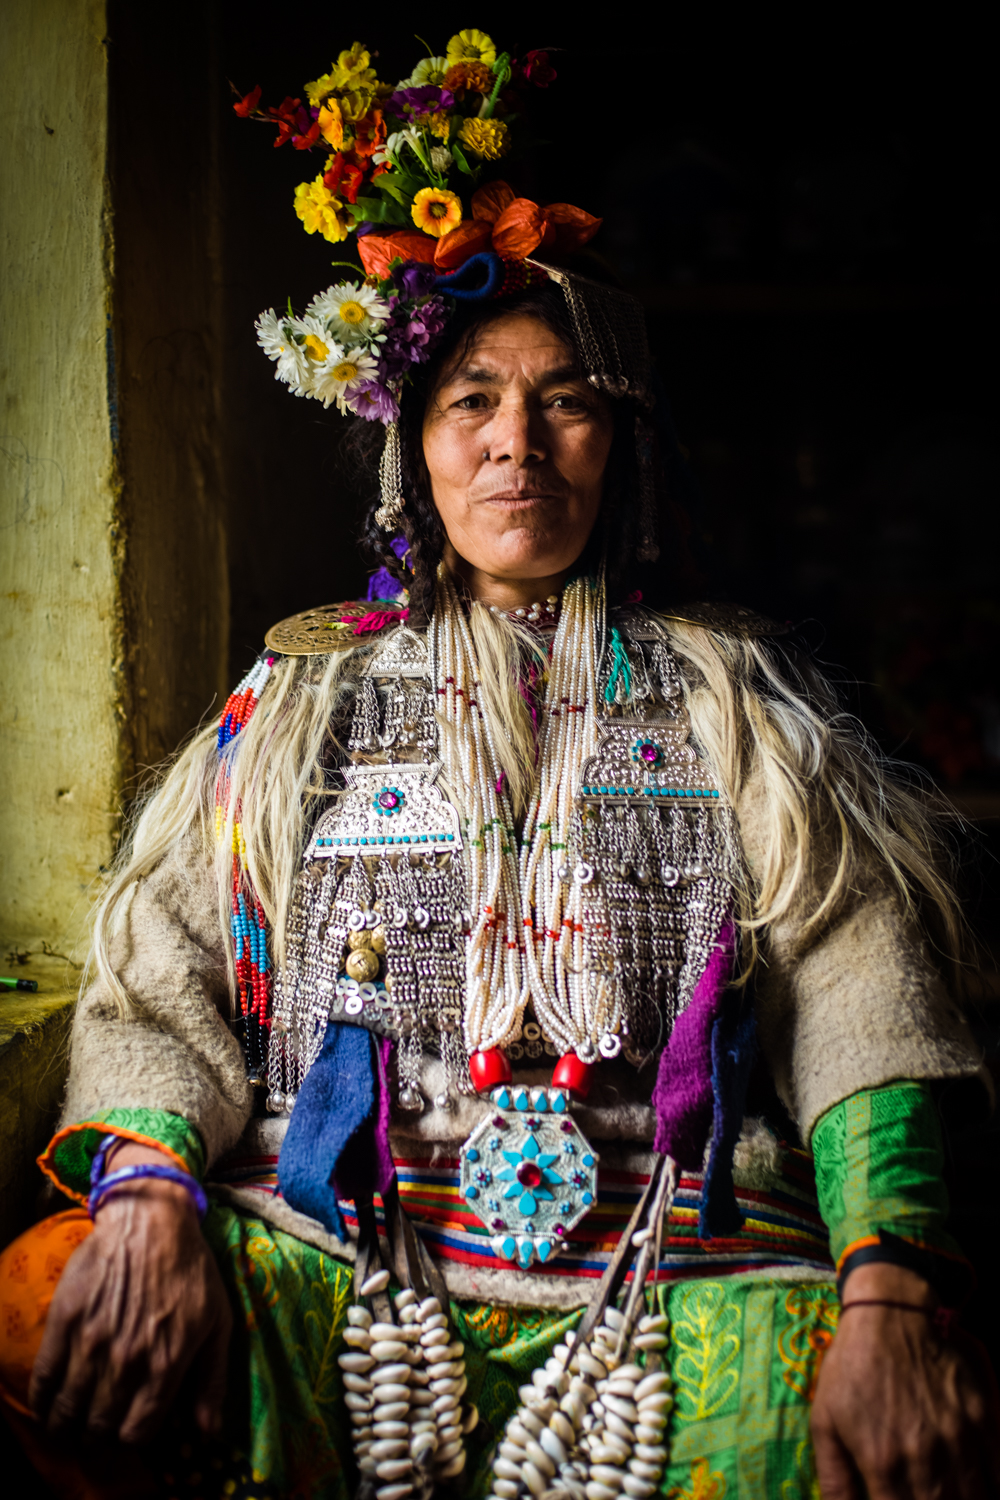 © Ayash Basu. Brokpa women adorn themselves with flowers, precious stones and silver as a mark of purity and protection against the elements.